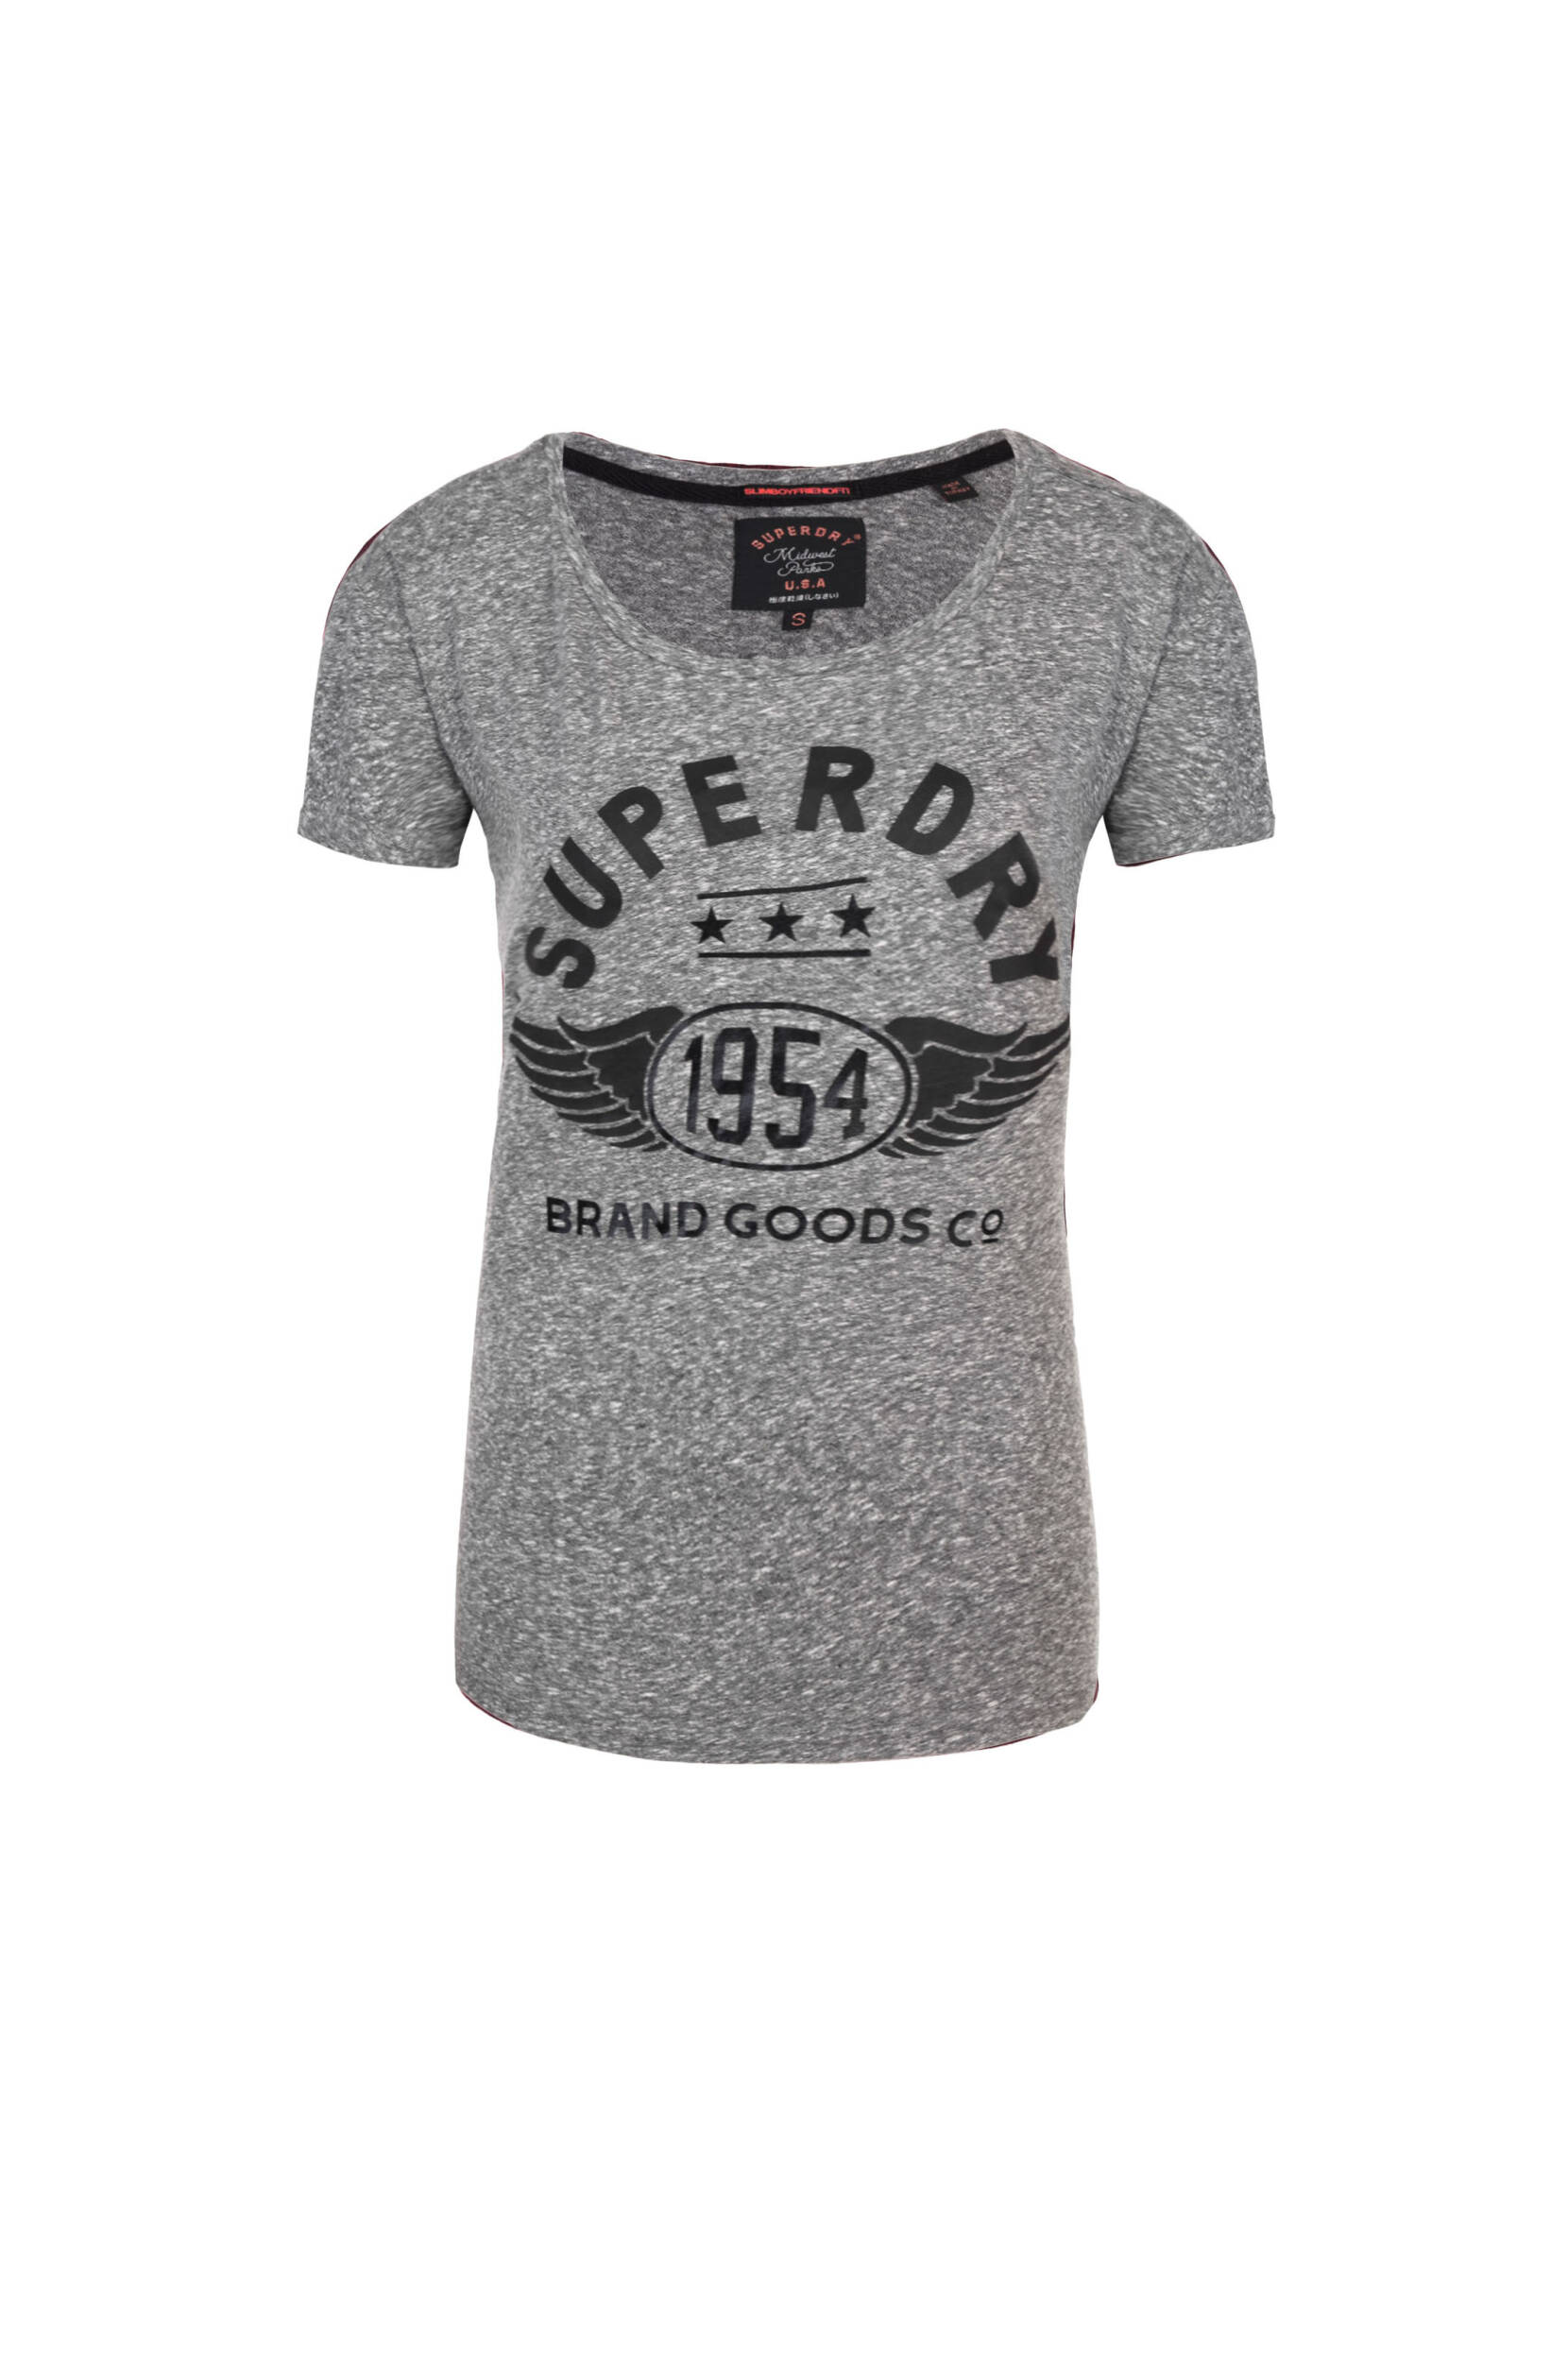 1954 brand good t shirt superdry gray for Successful t shirt brands